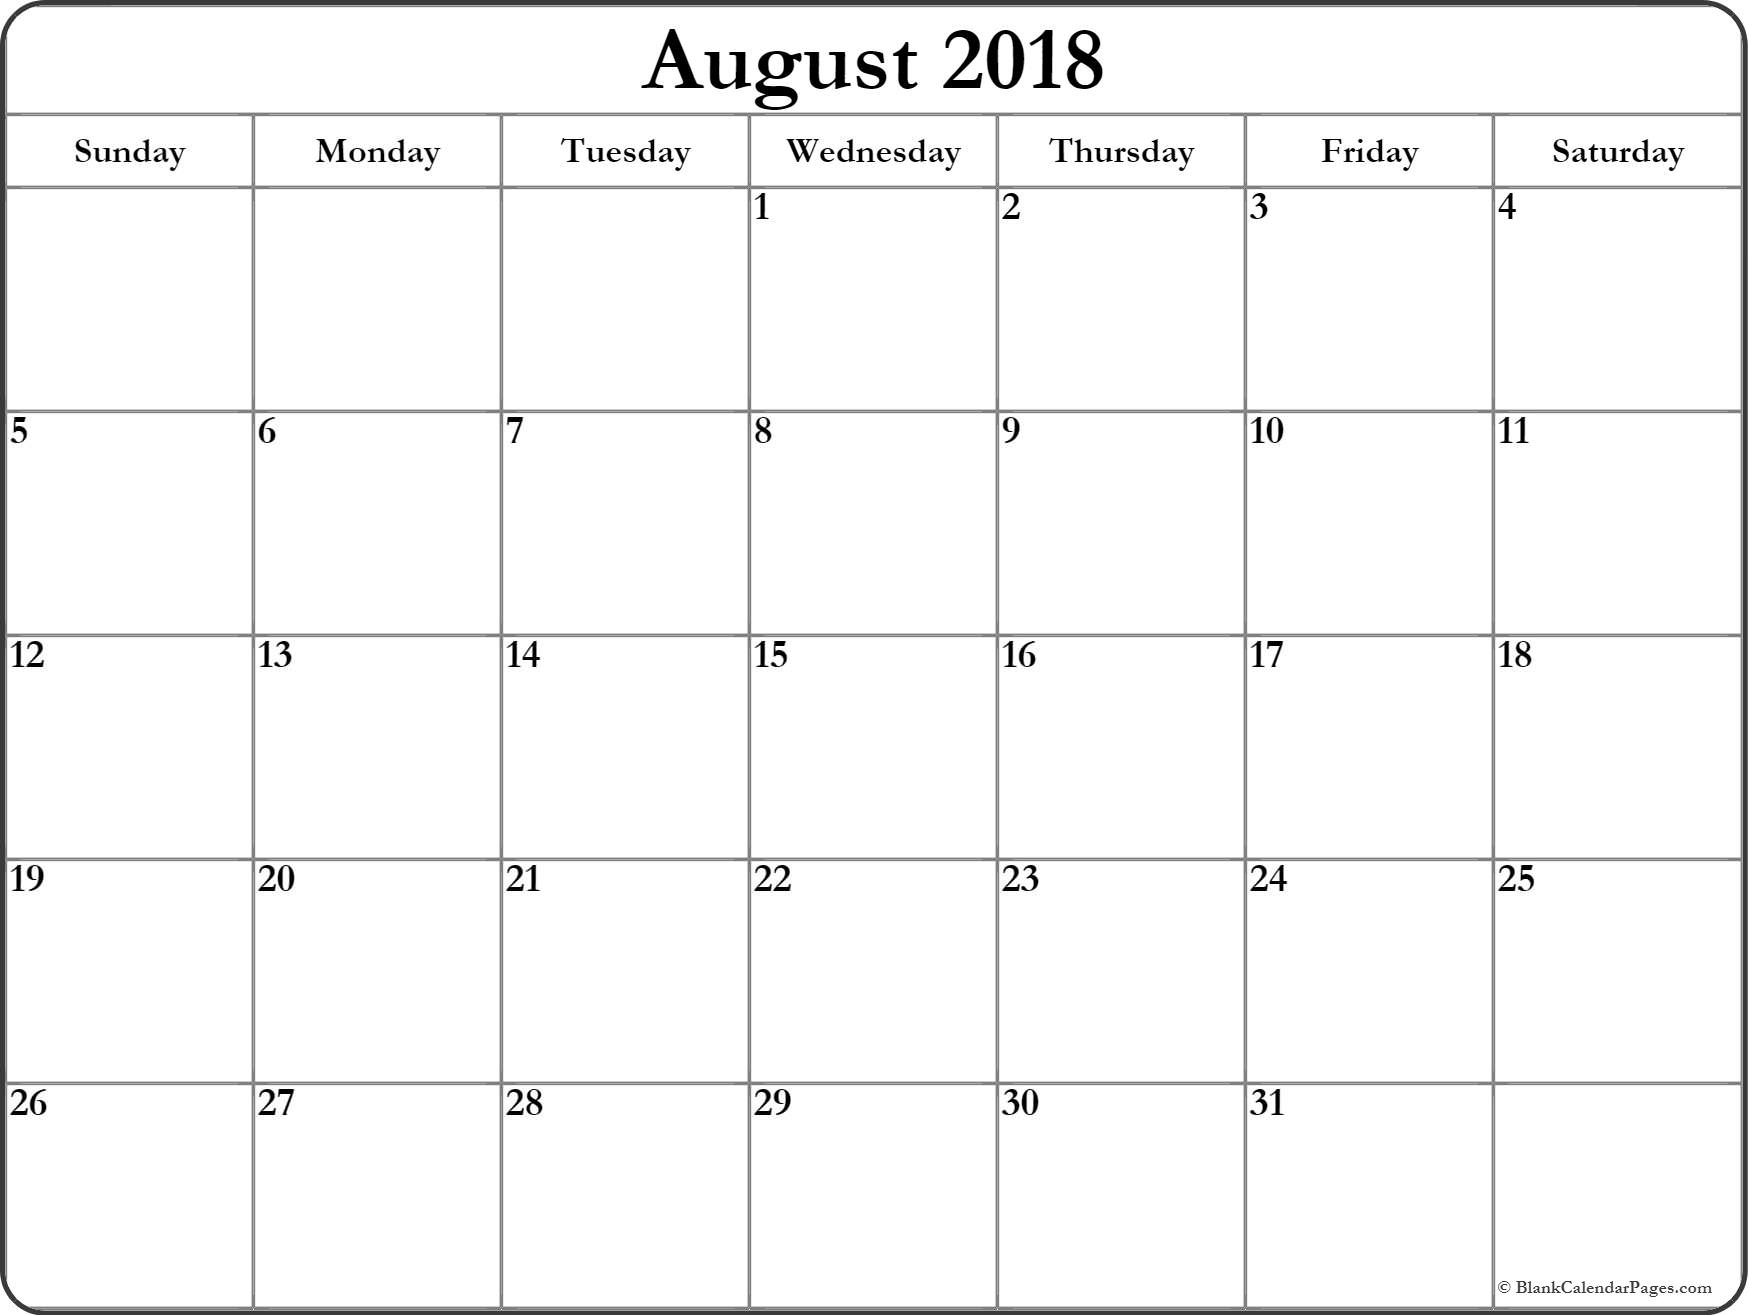 August 2018 Calendar | Free Printable Monthly Calendars with August Blank Calendar Pages